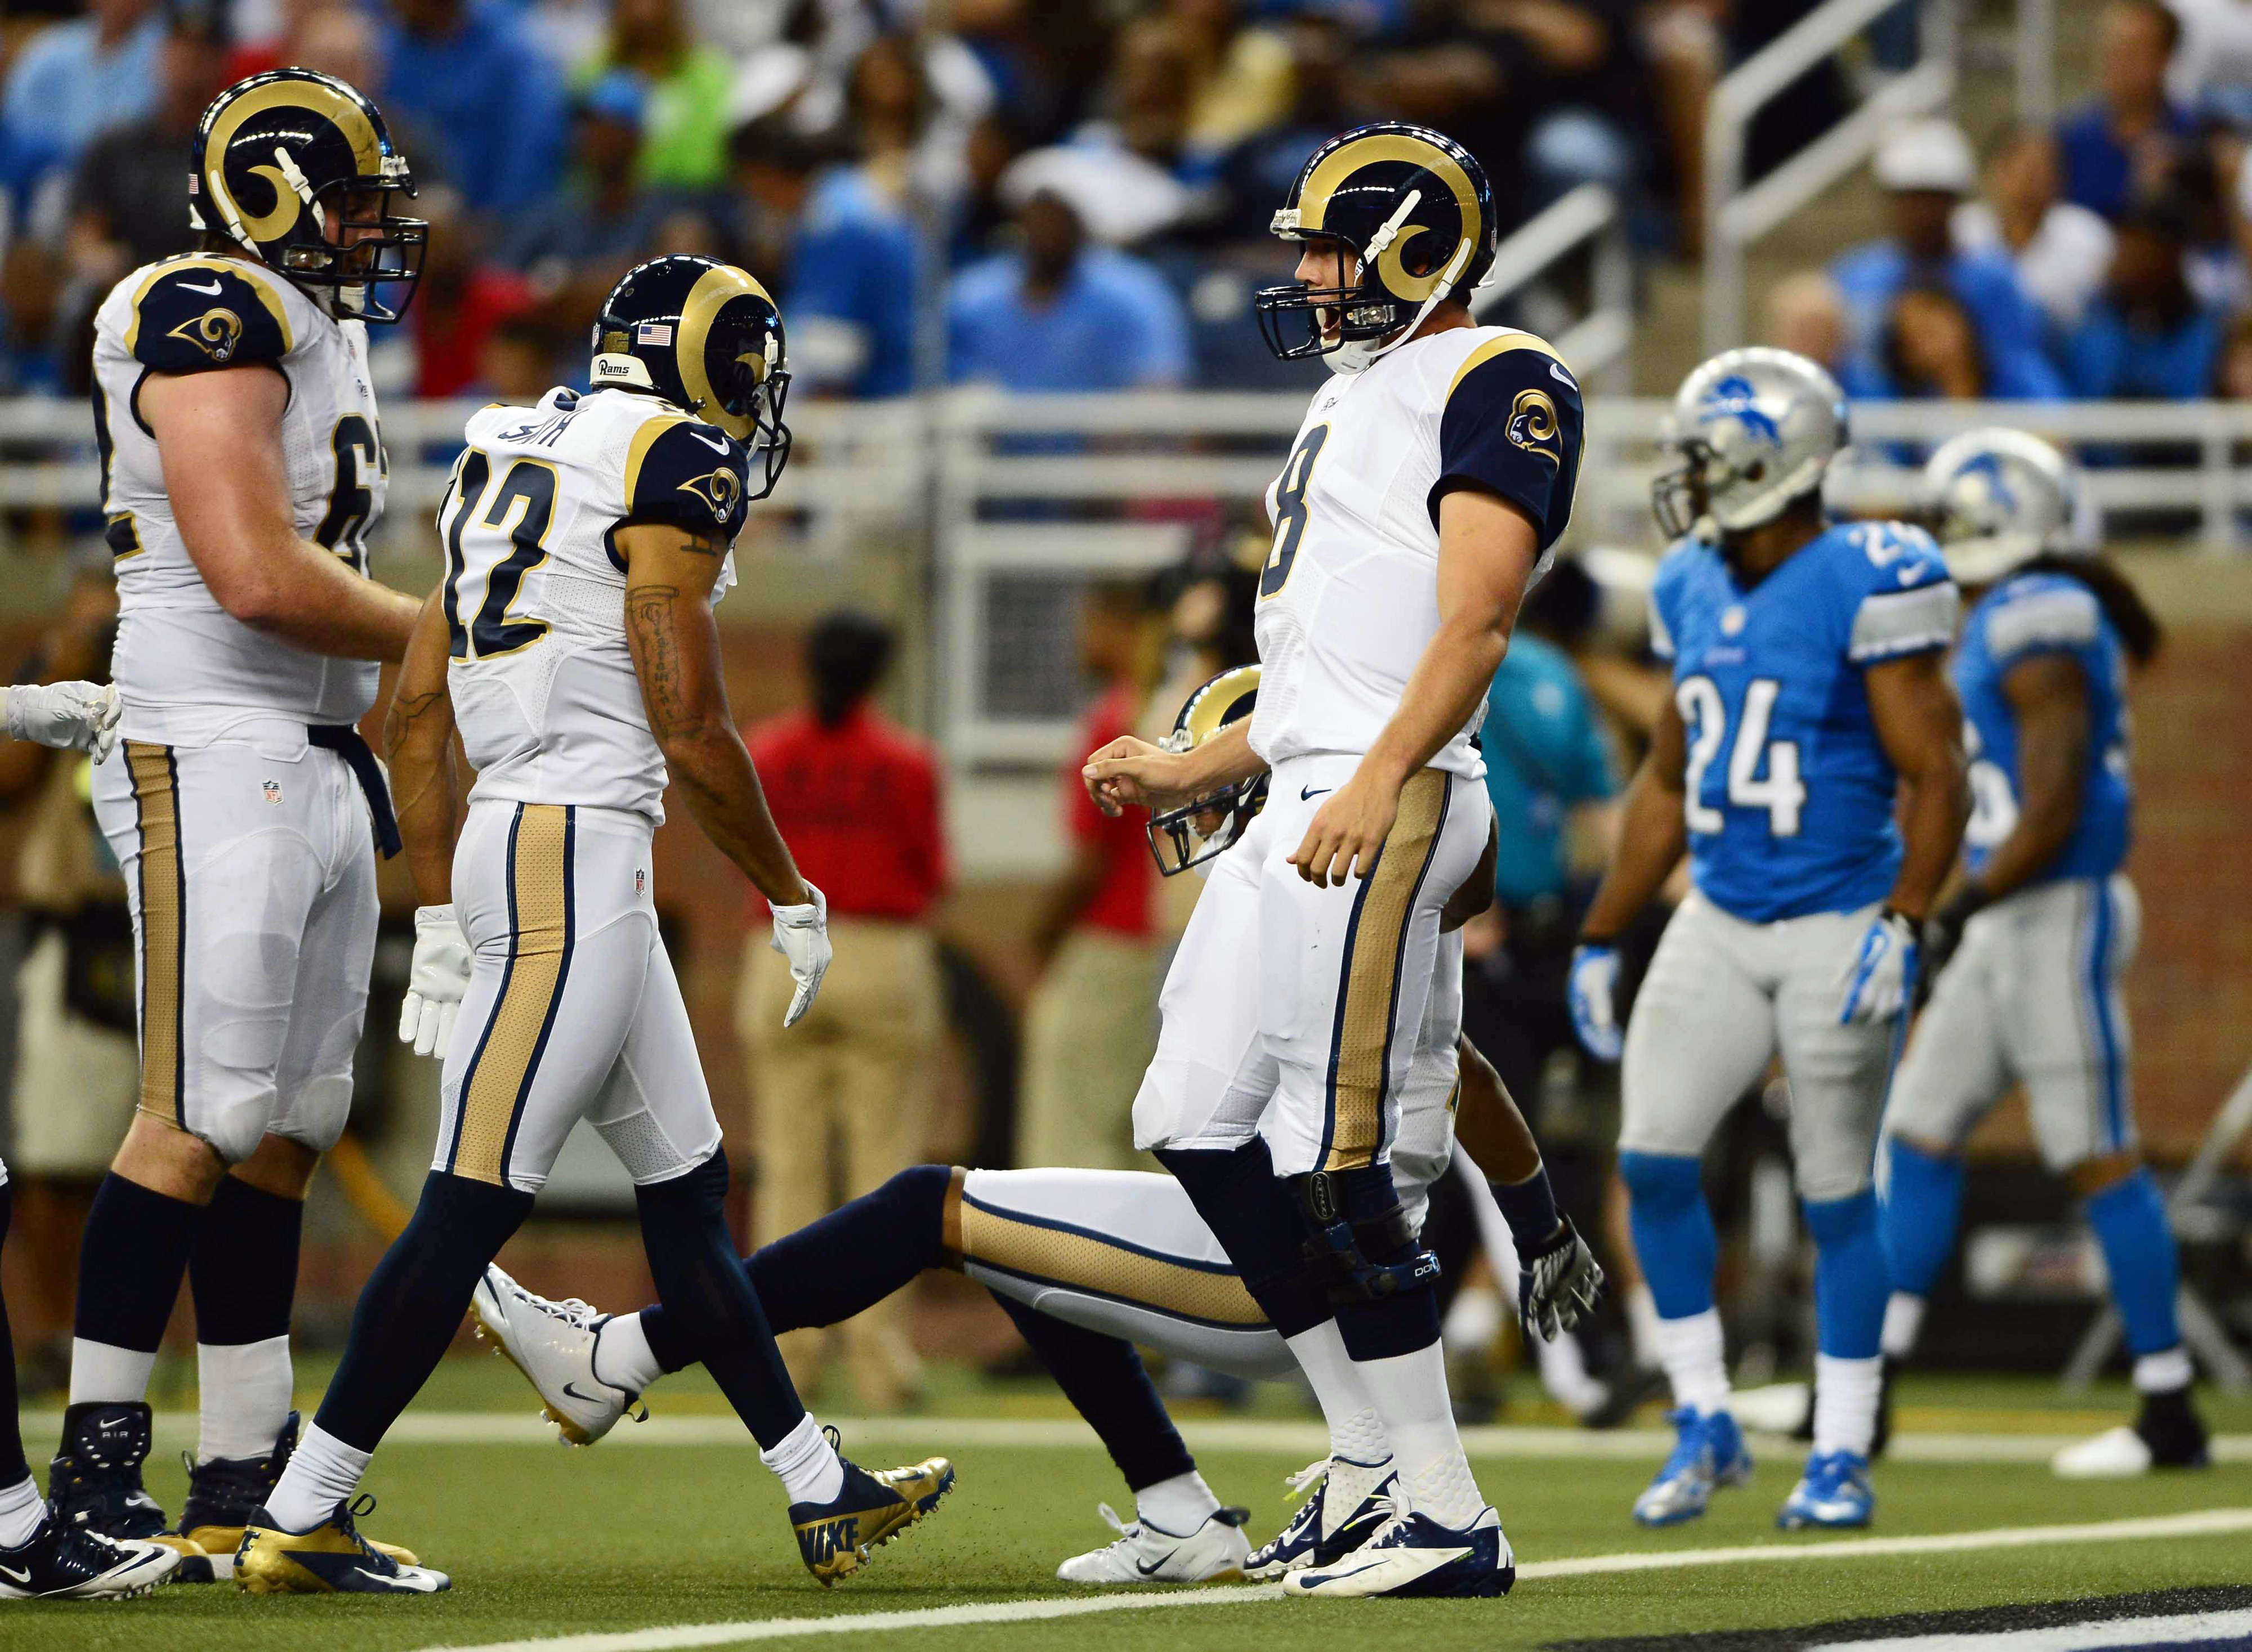 The St. Louis Rams will have to make a roster move or two to address injuries to the offensive line.